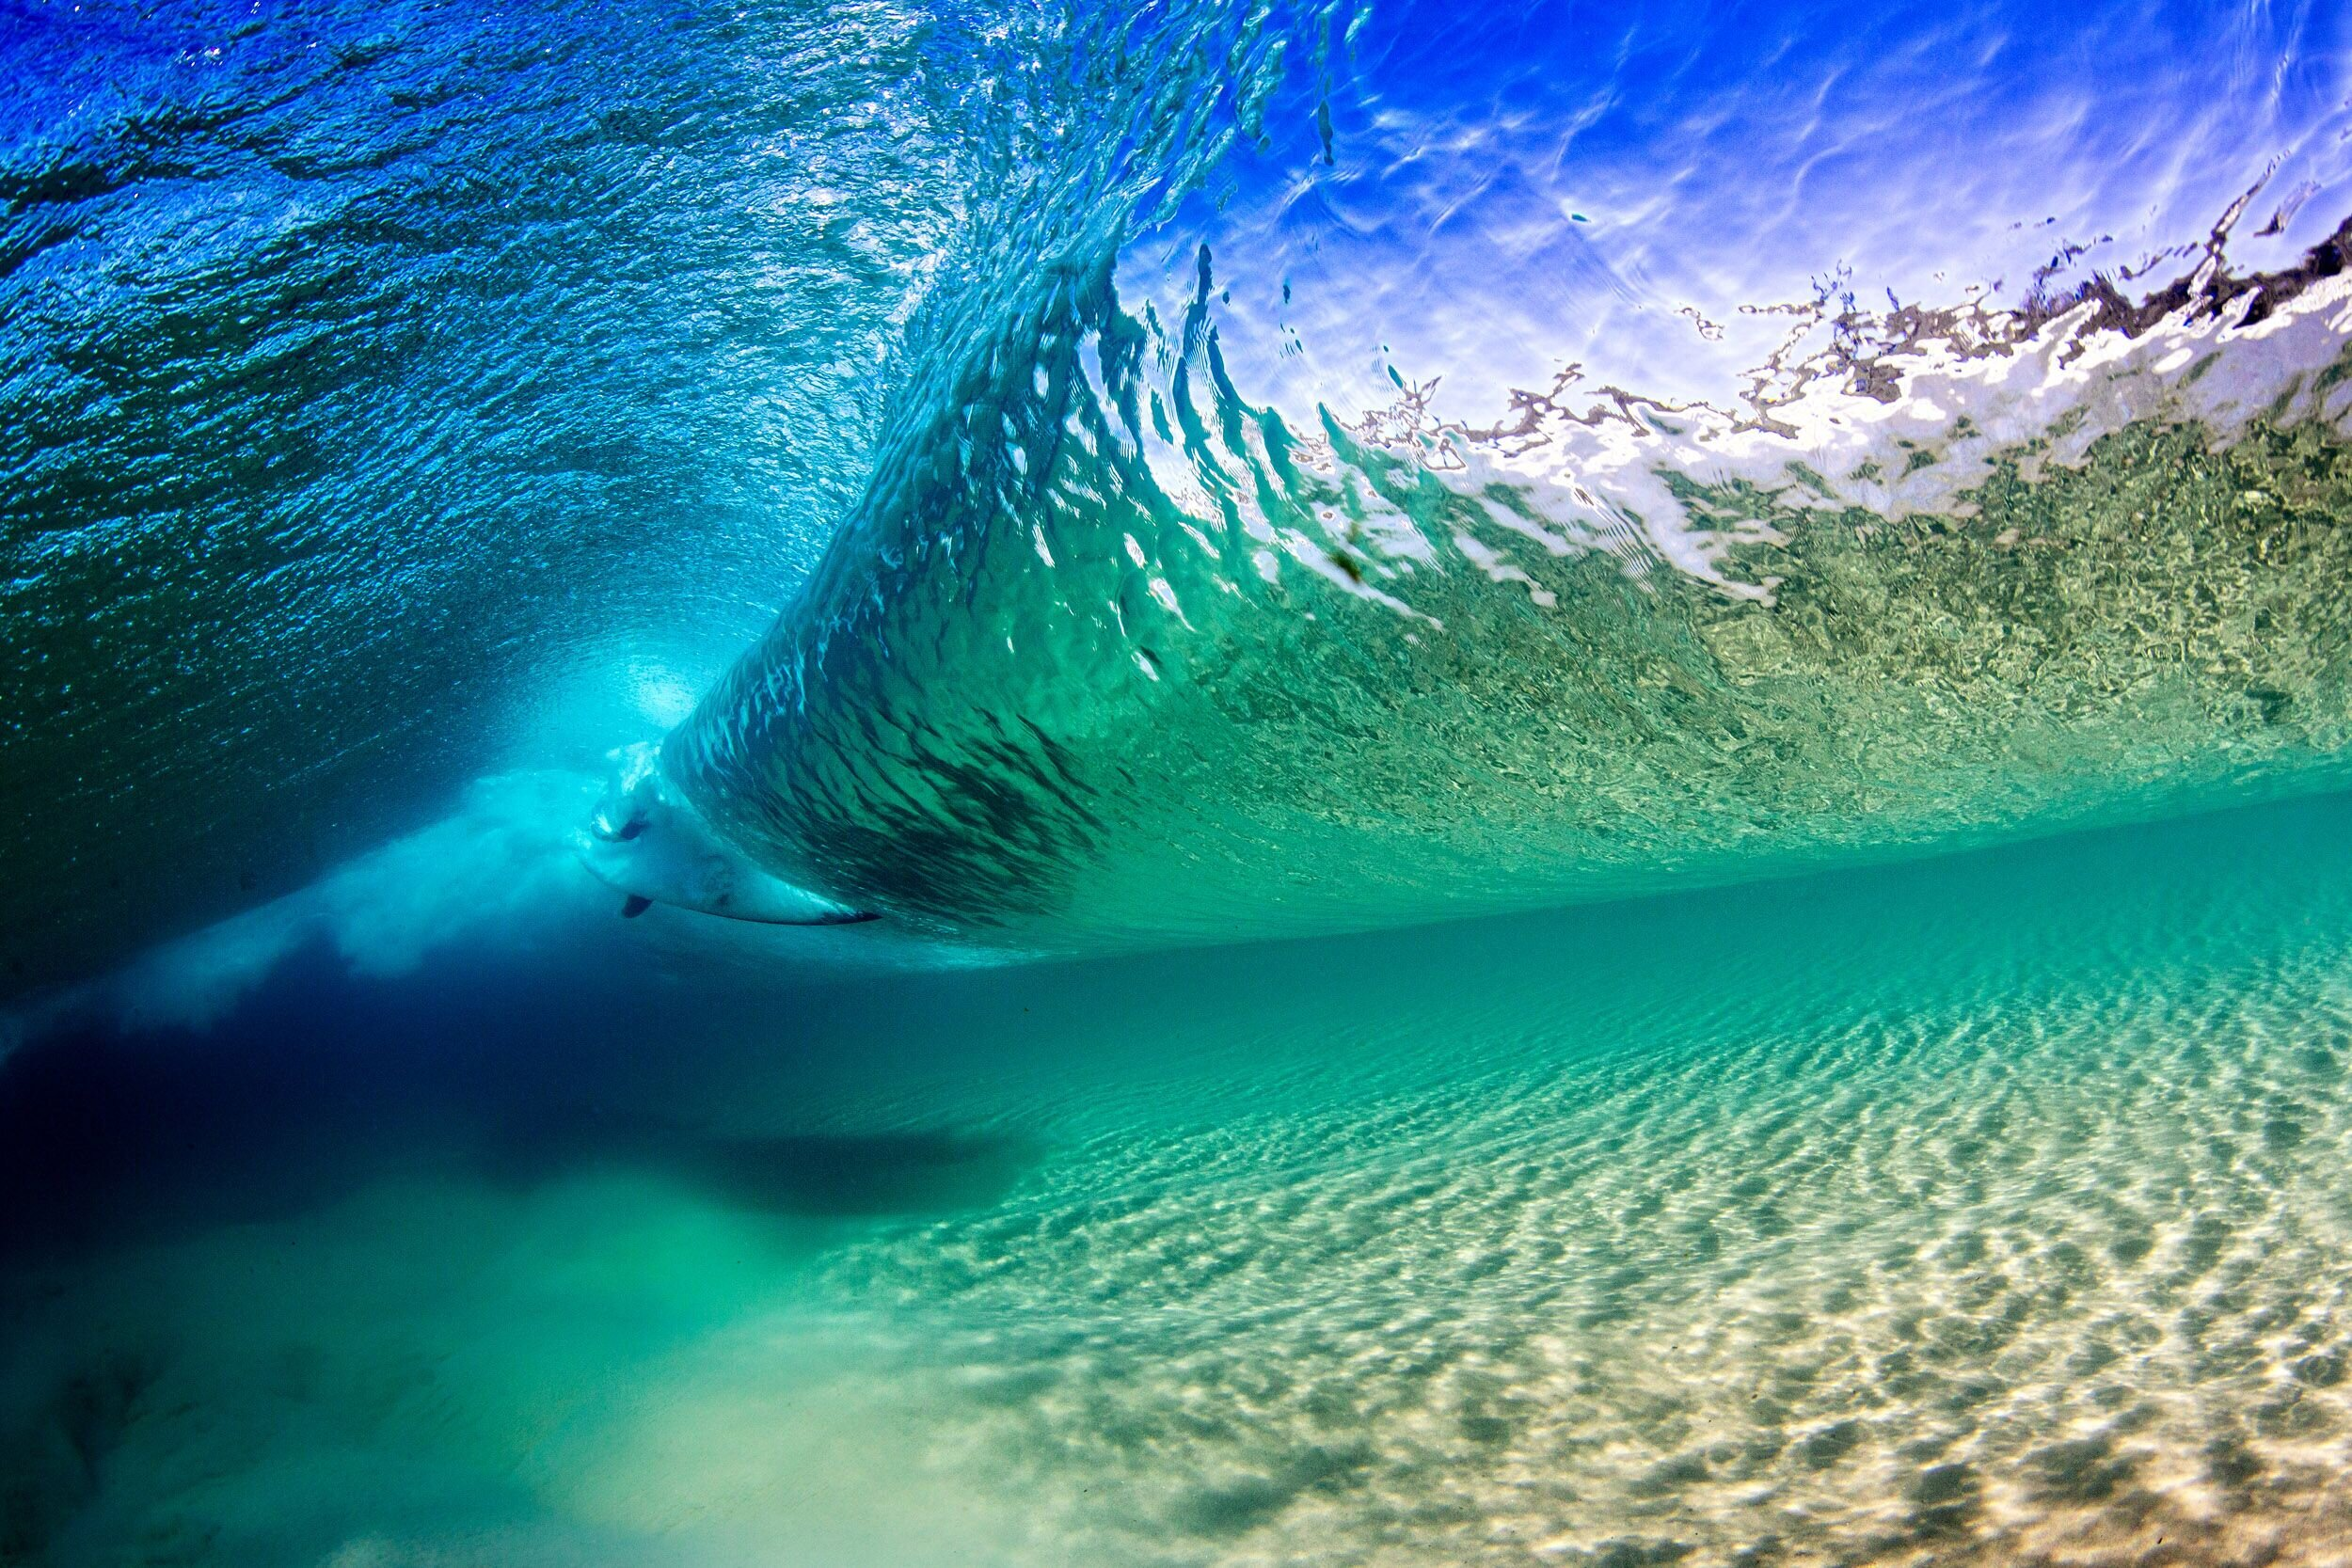 10 surf photography tips to get yourself to the next level - Tom Woods